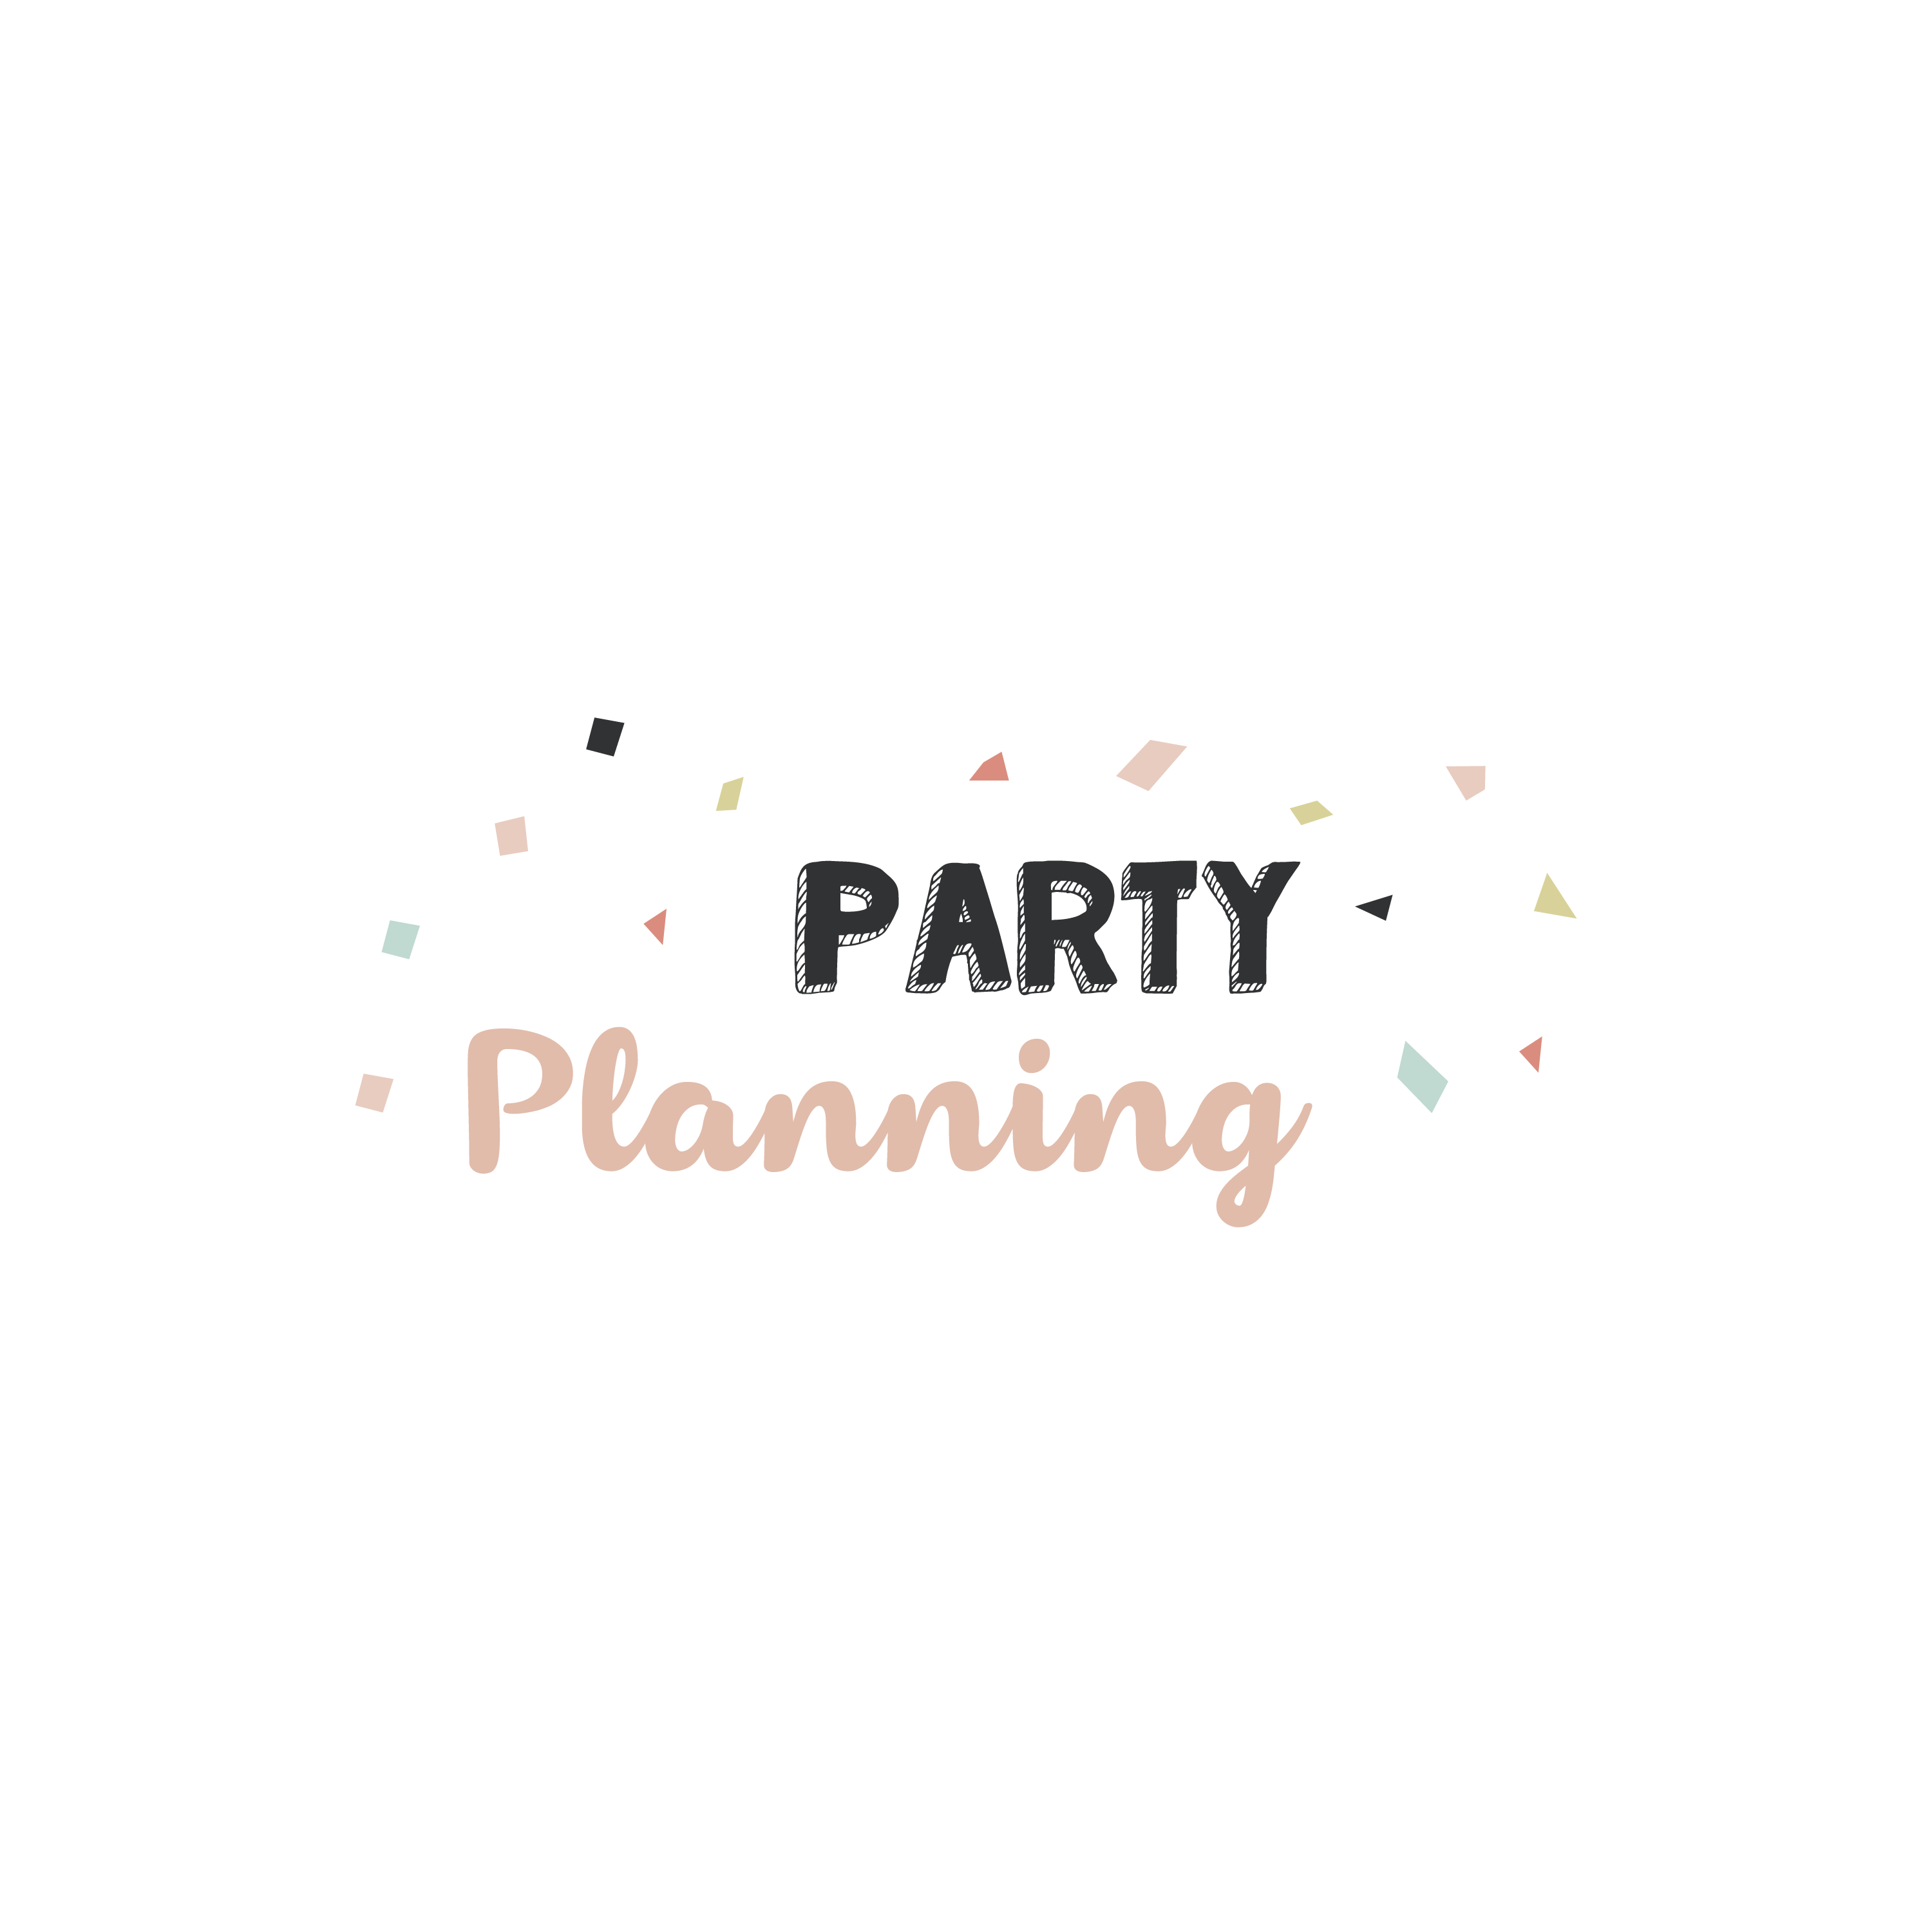 English version of the logo of the document to print Party planning made by Les Belles Combines